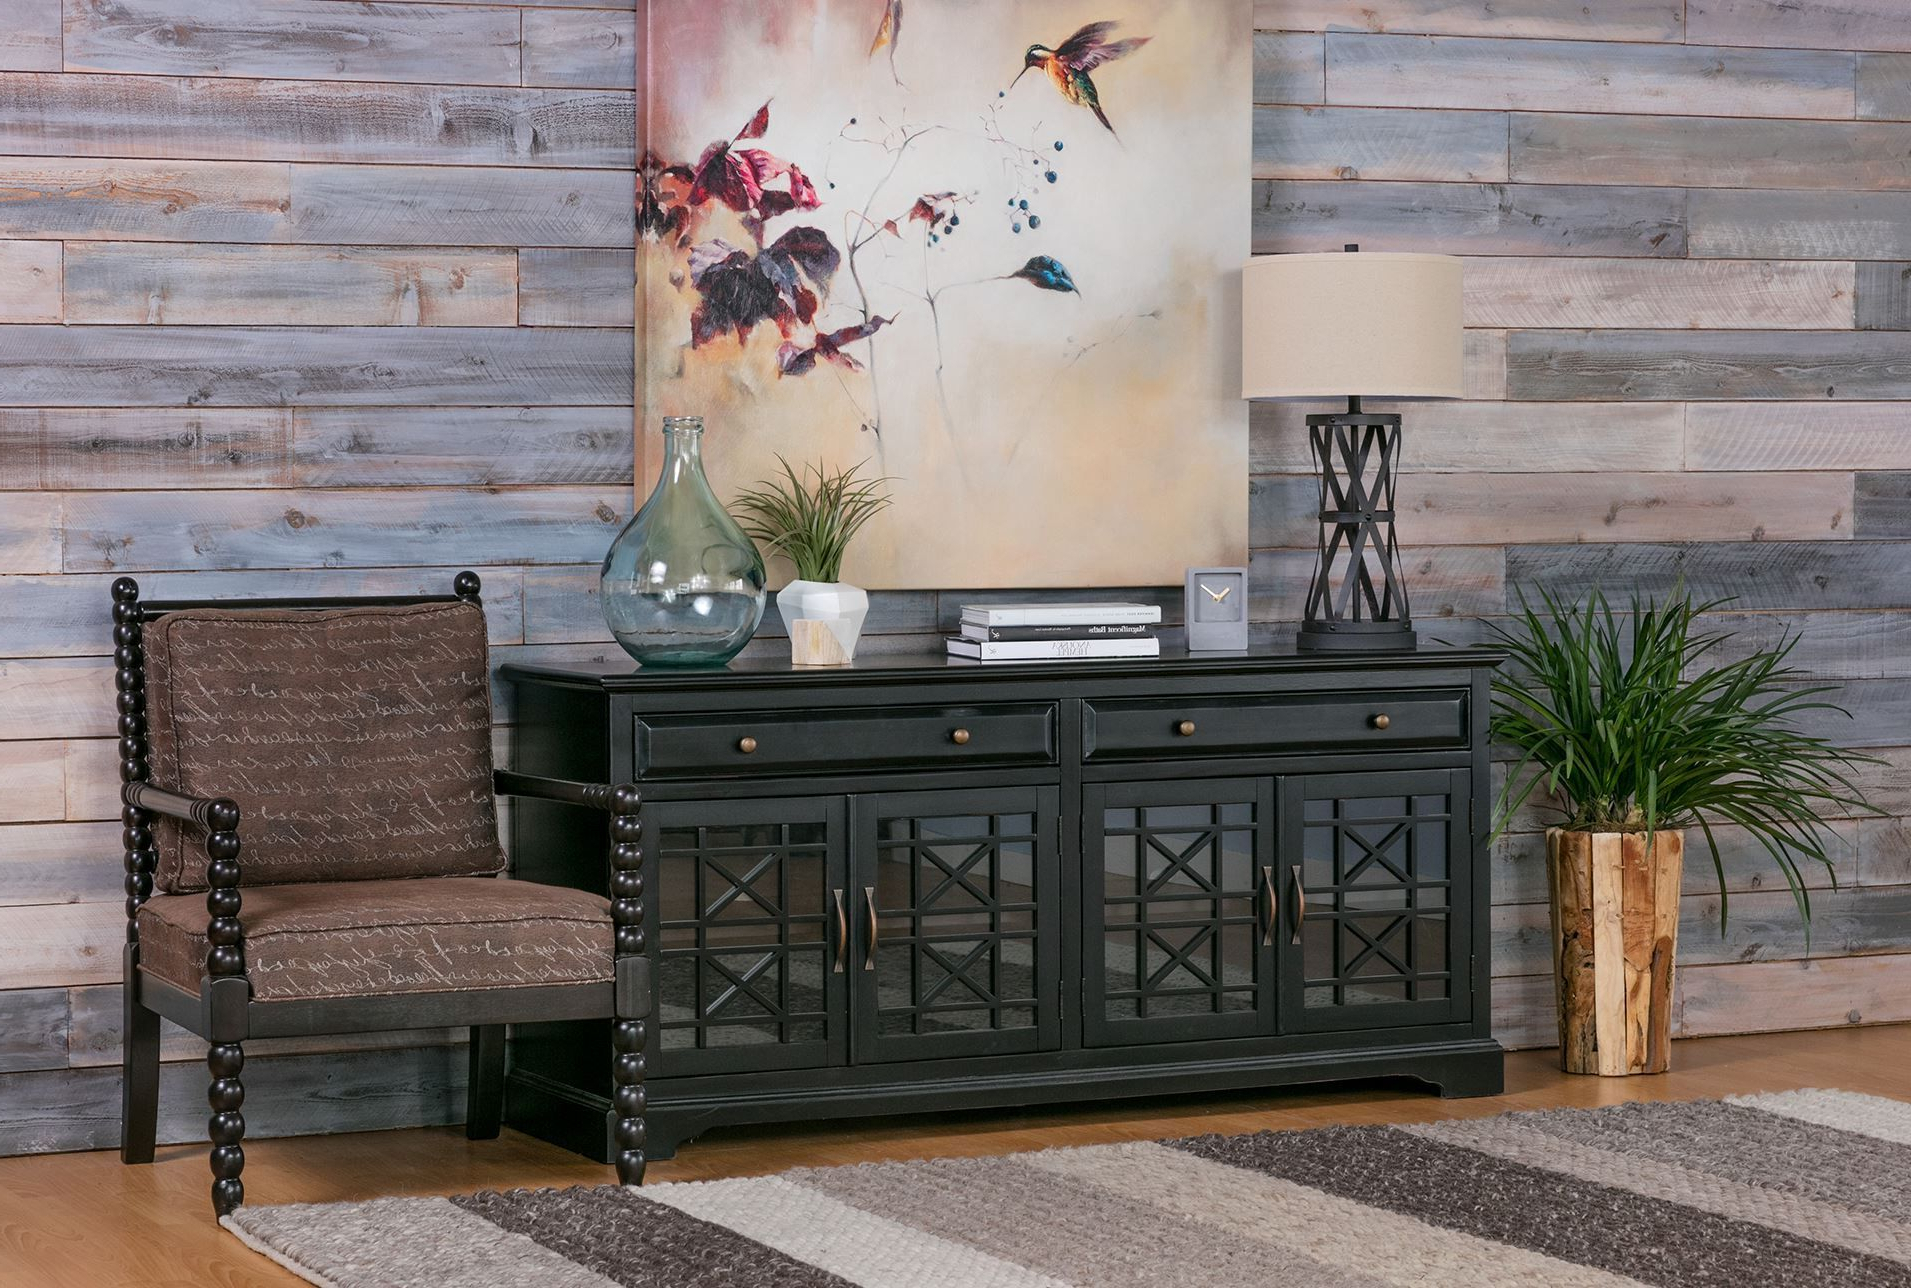 Annabelle Black 70 Inch Tv Stand | For The Home | Pinterest | 70 With Regard To Annabelle Black 70 Inch Tv Stands (View 2 of 20)